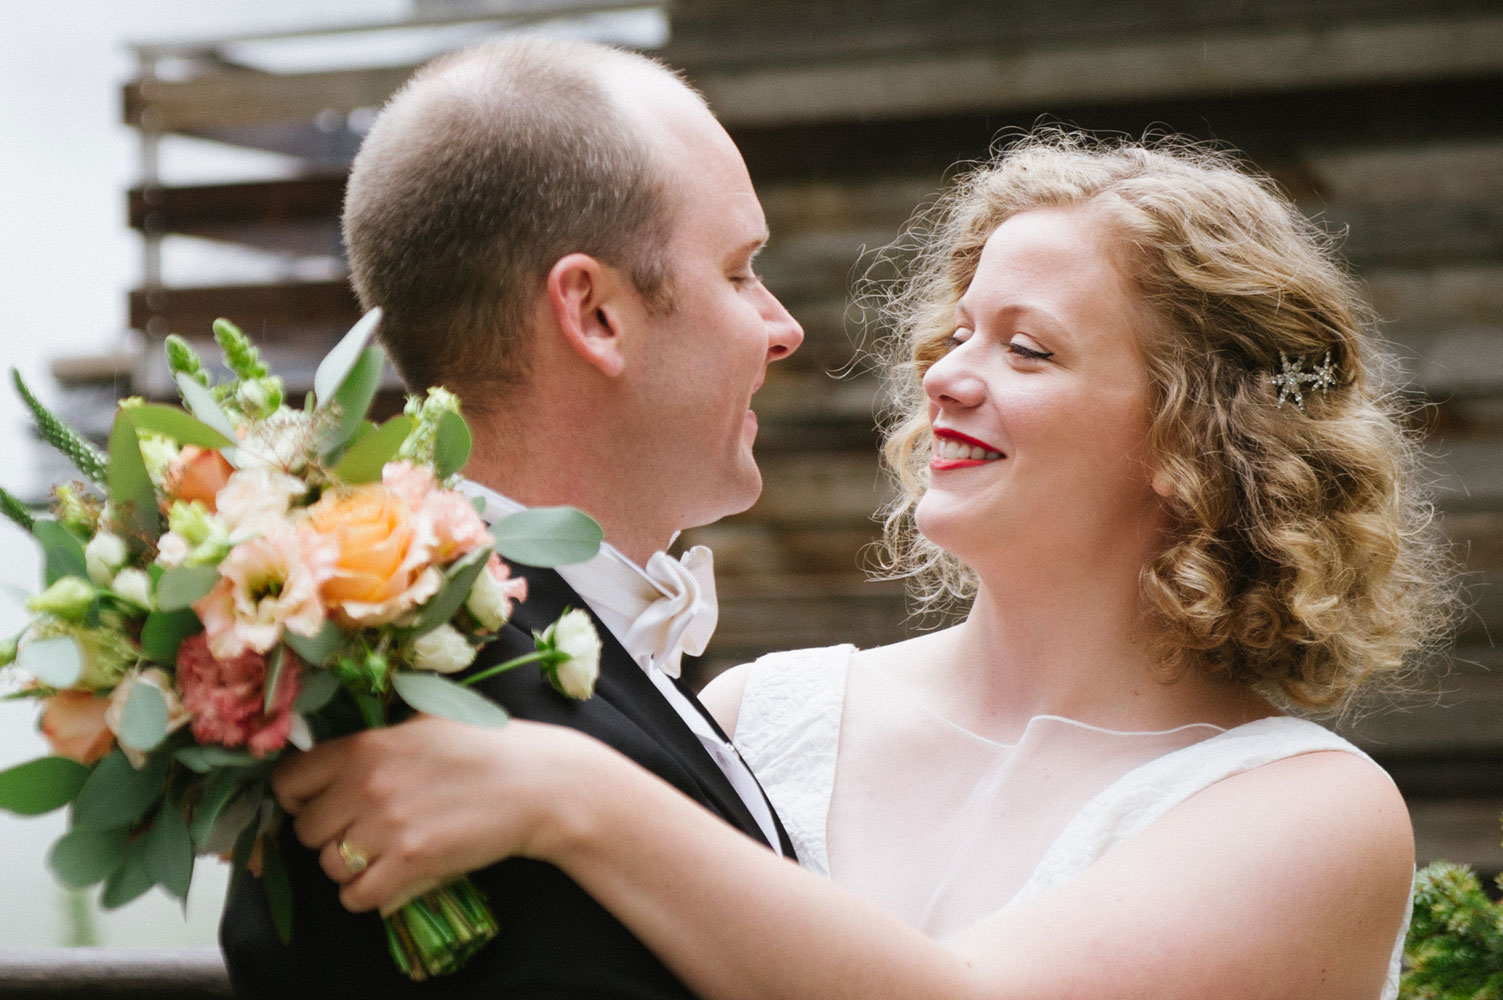 wedding_photographer_zermatt_26.jpg